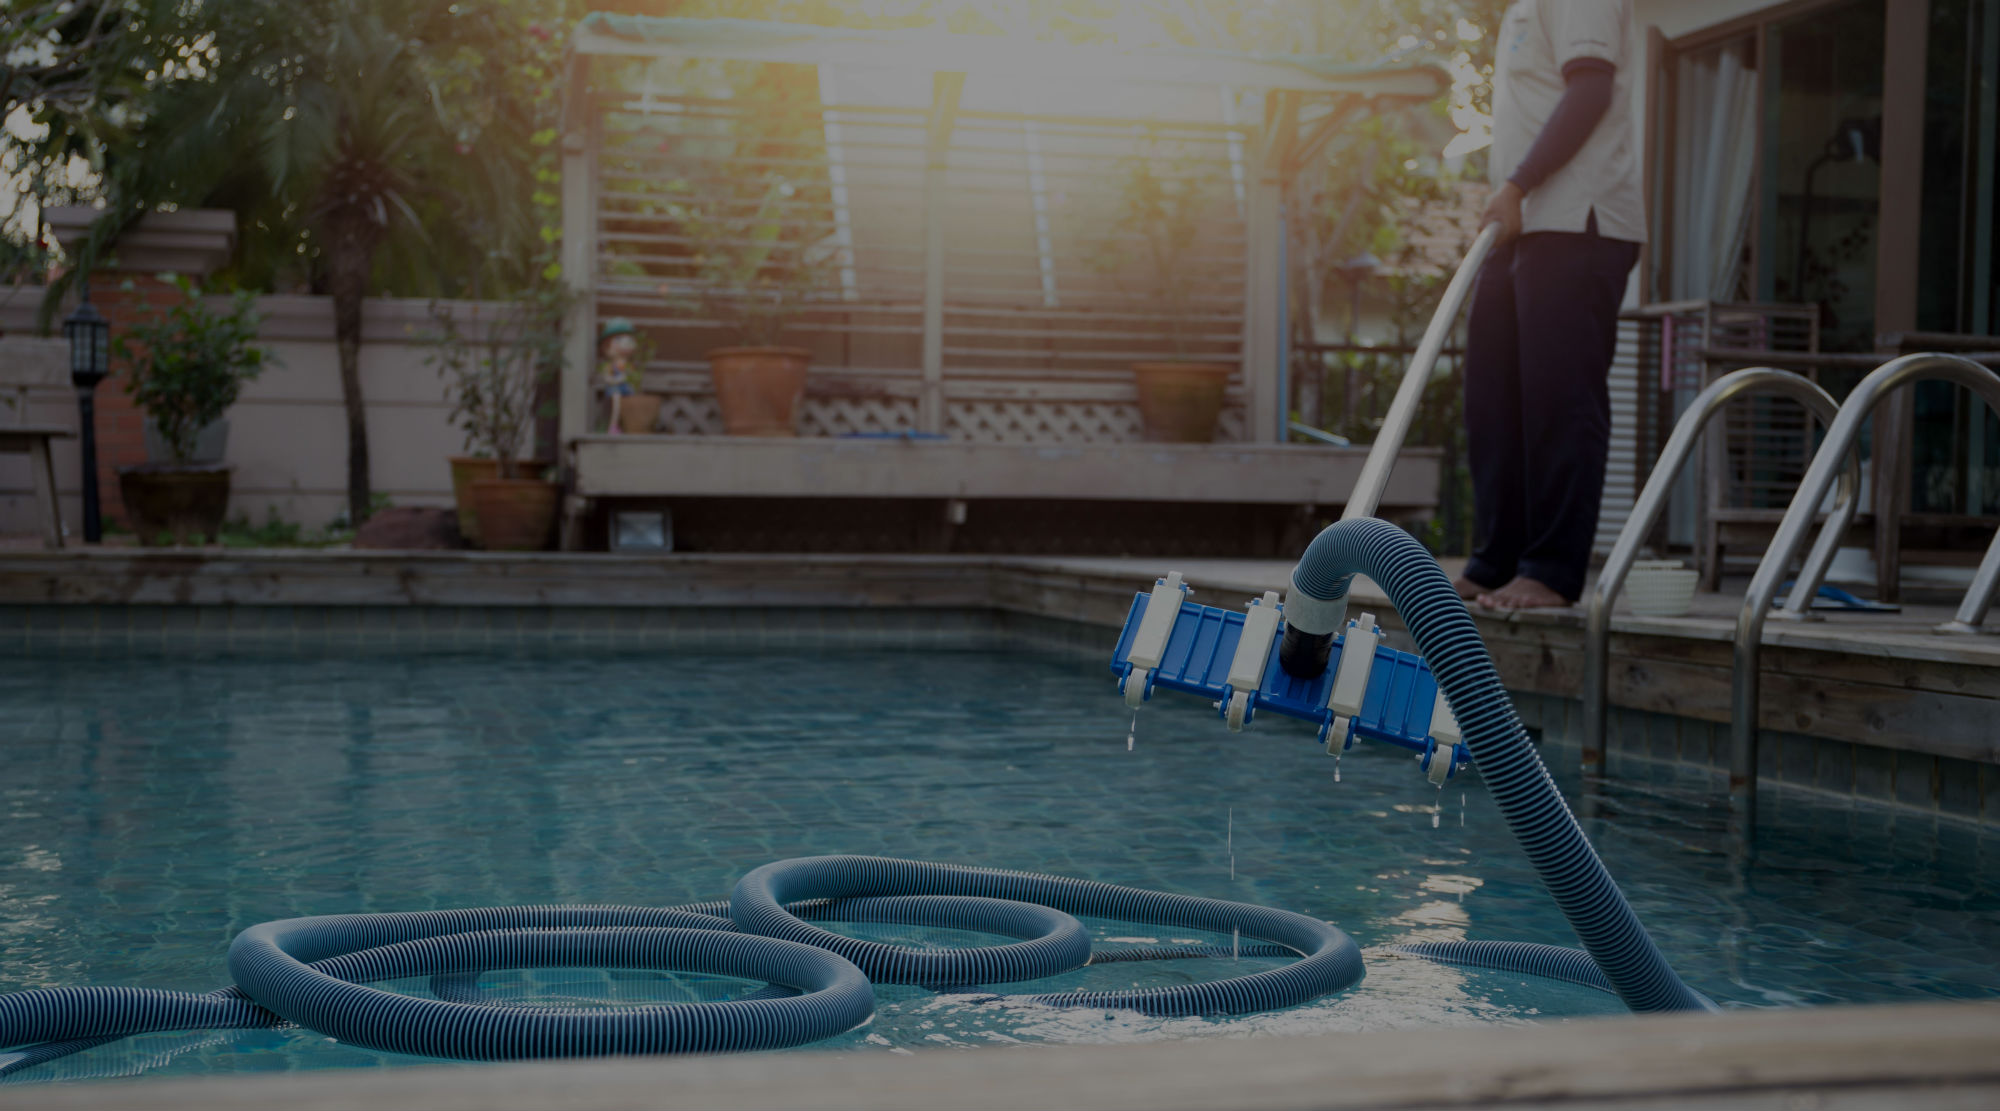 Pool service montgomery tx pool services in texas - Waterloo swimming pool denison tx ...